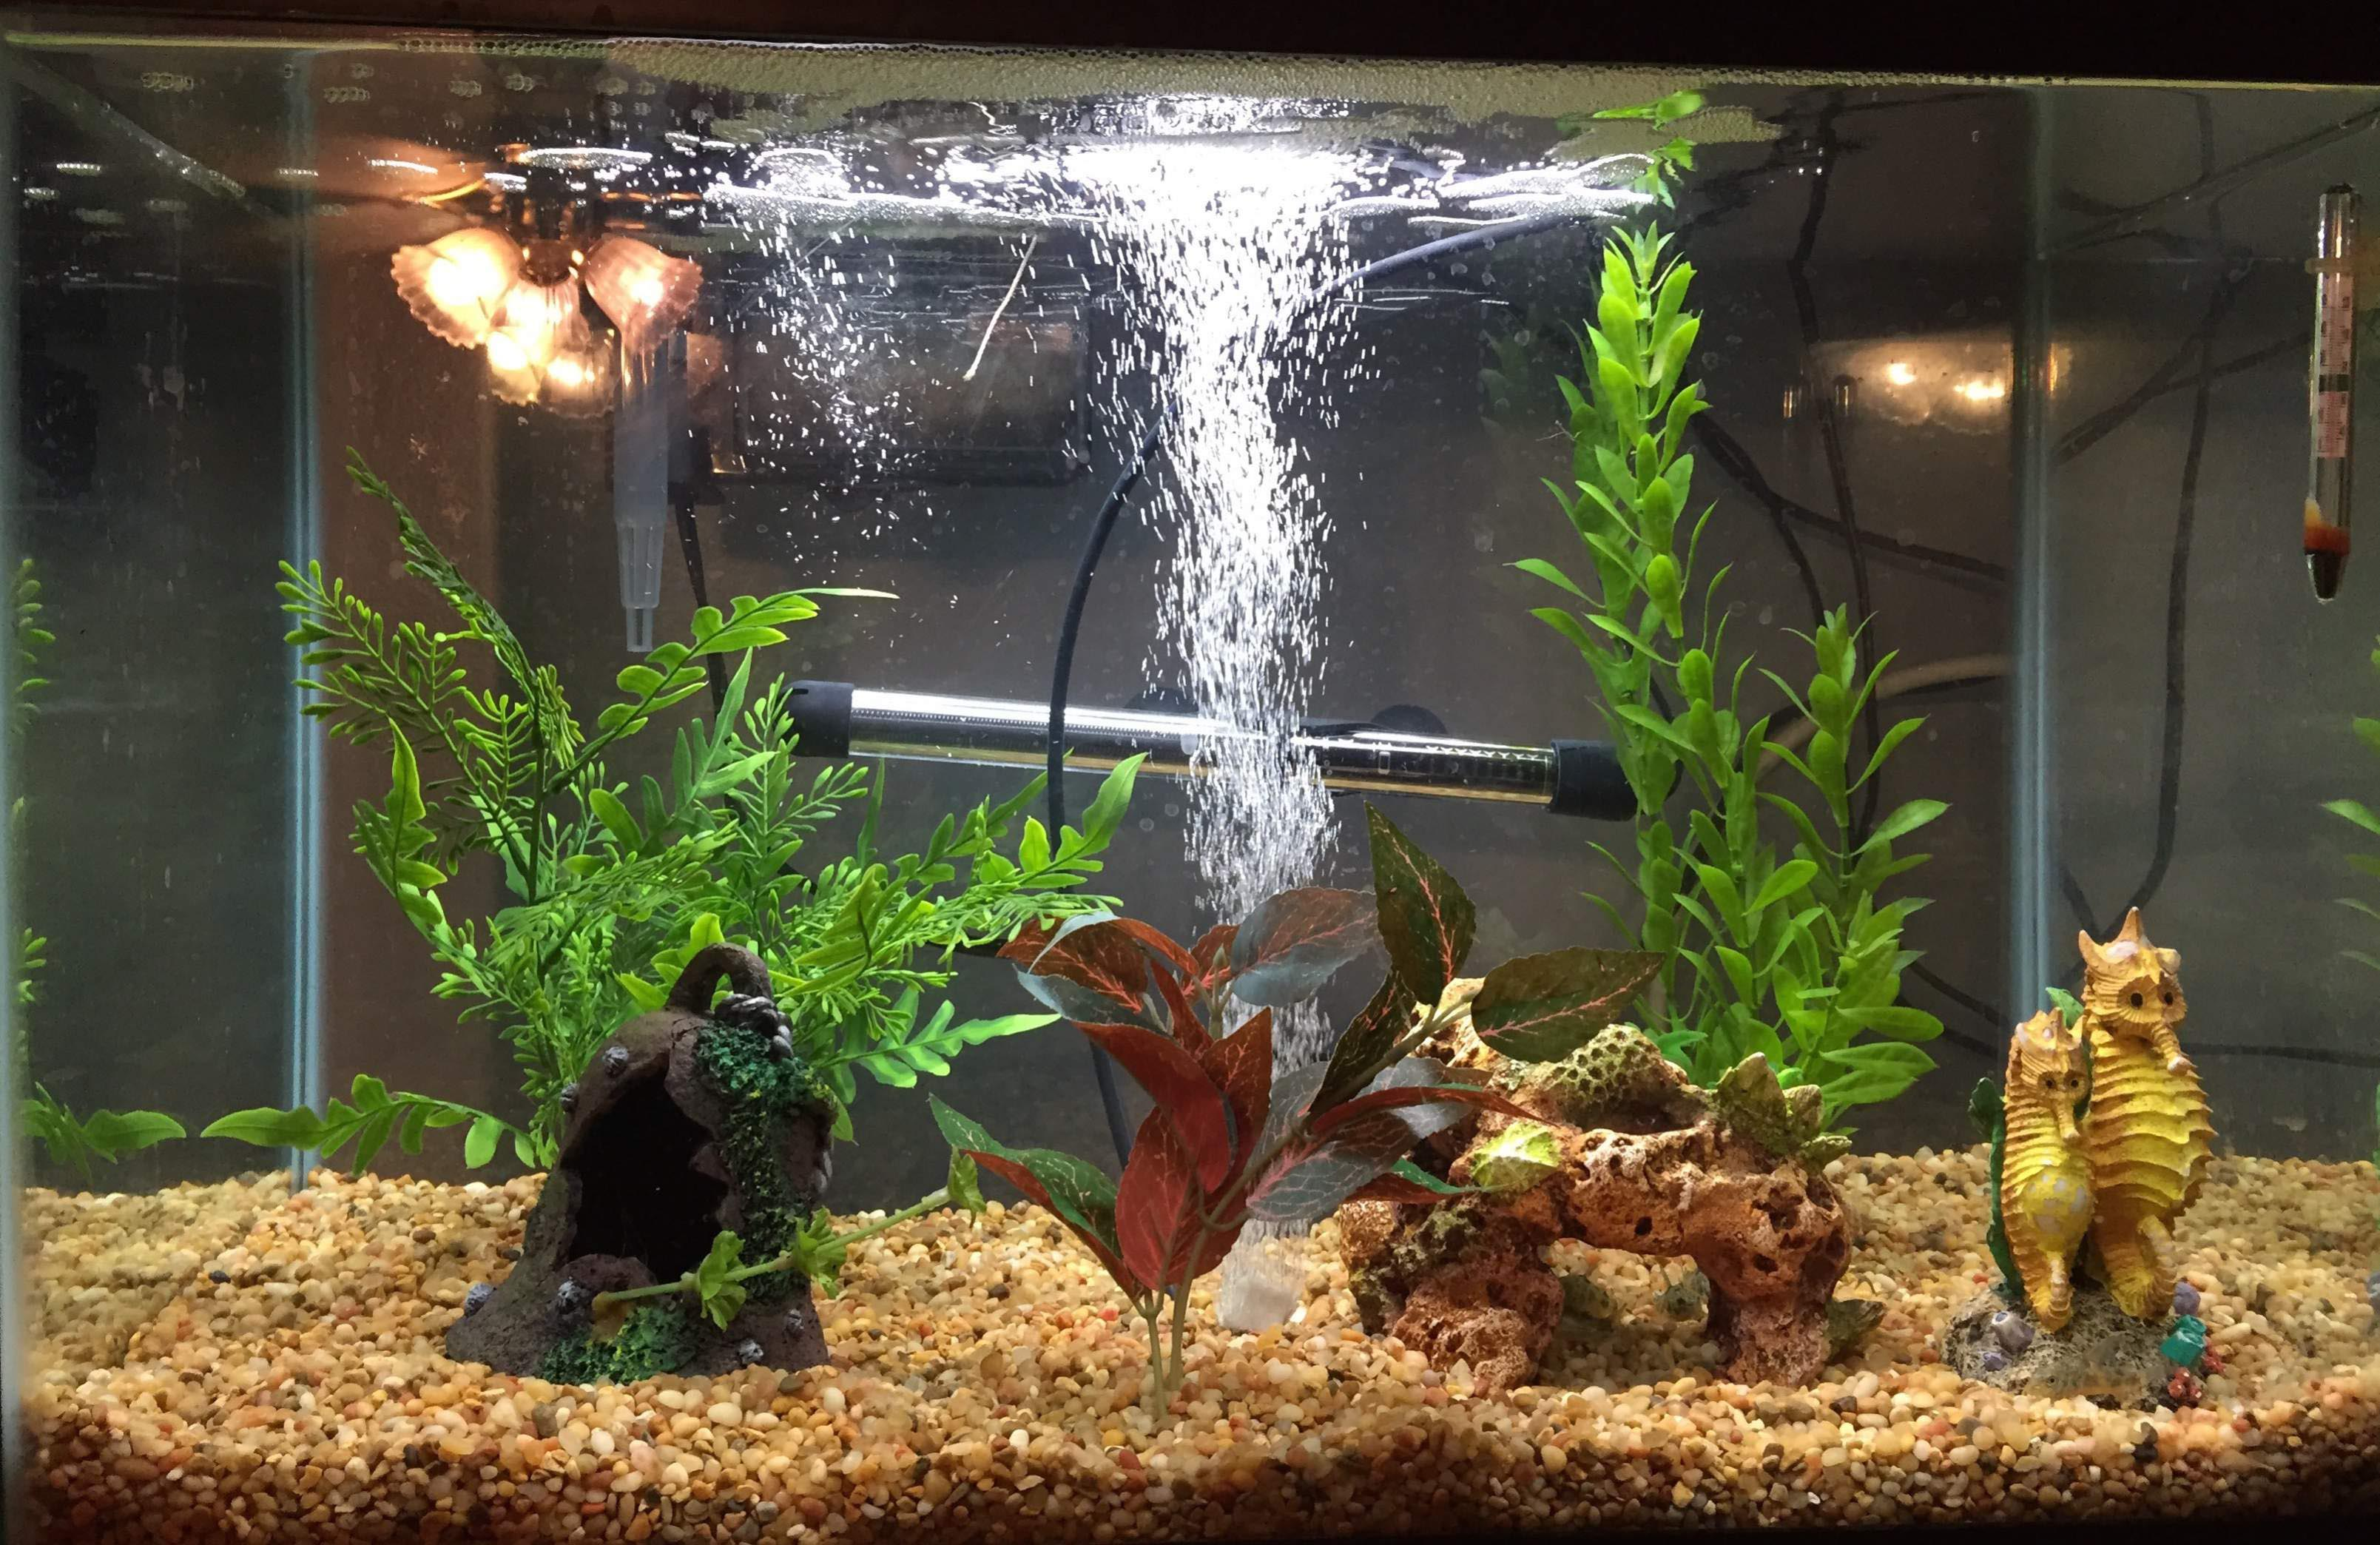 Petco live aquarium plants aquarium design ideas for Aquarium wood decoration